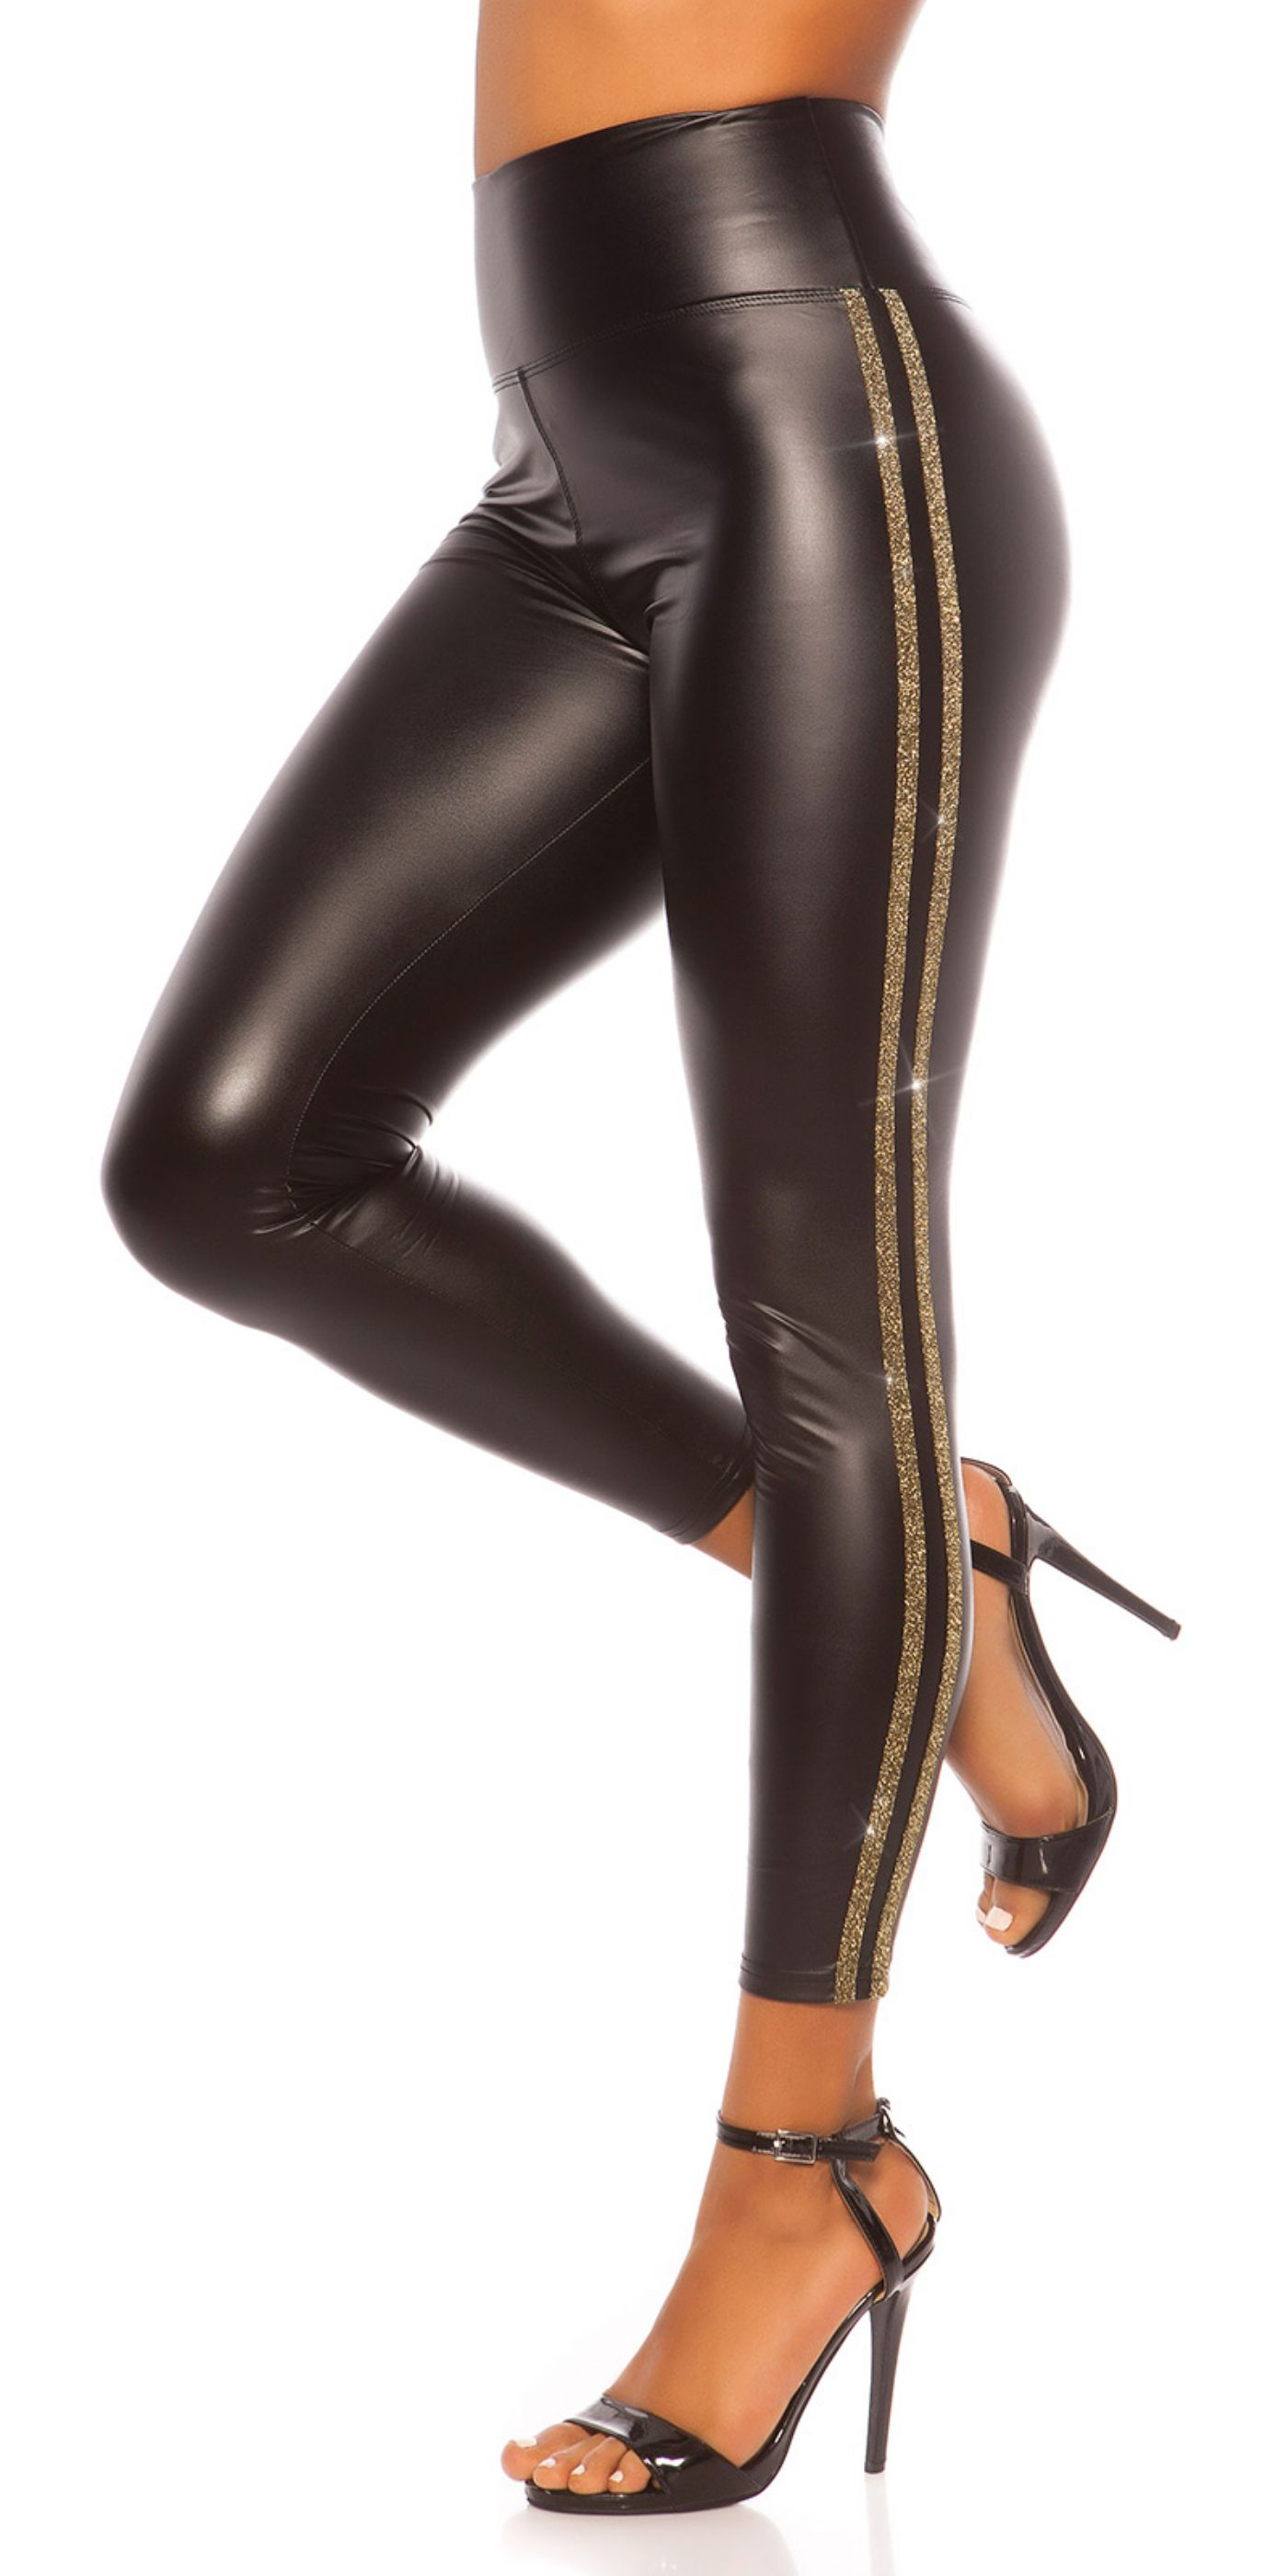 Læderlook Leggings - Guld stribe (wetlook)